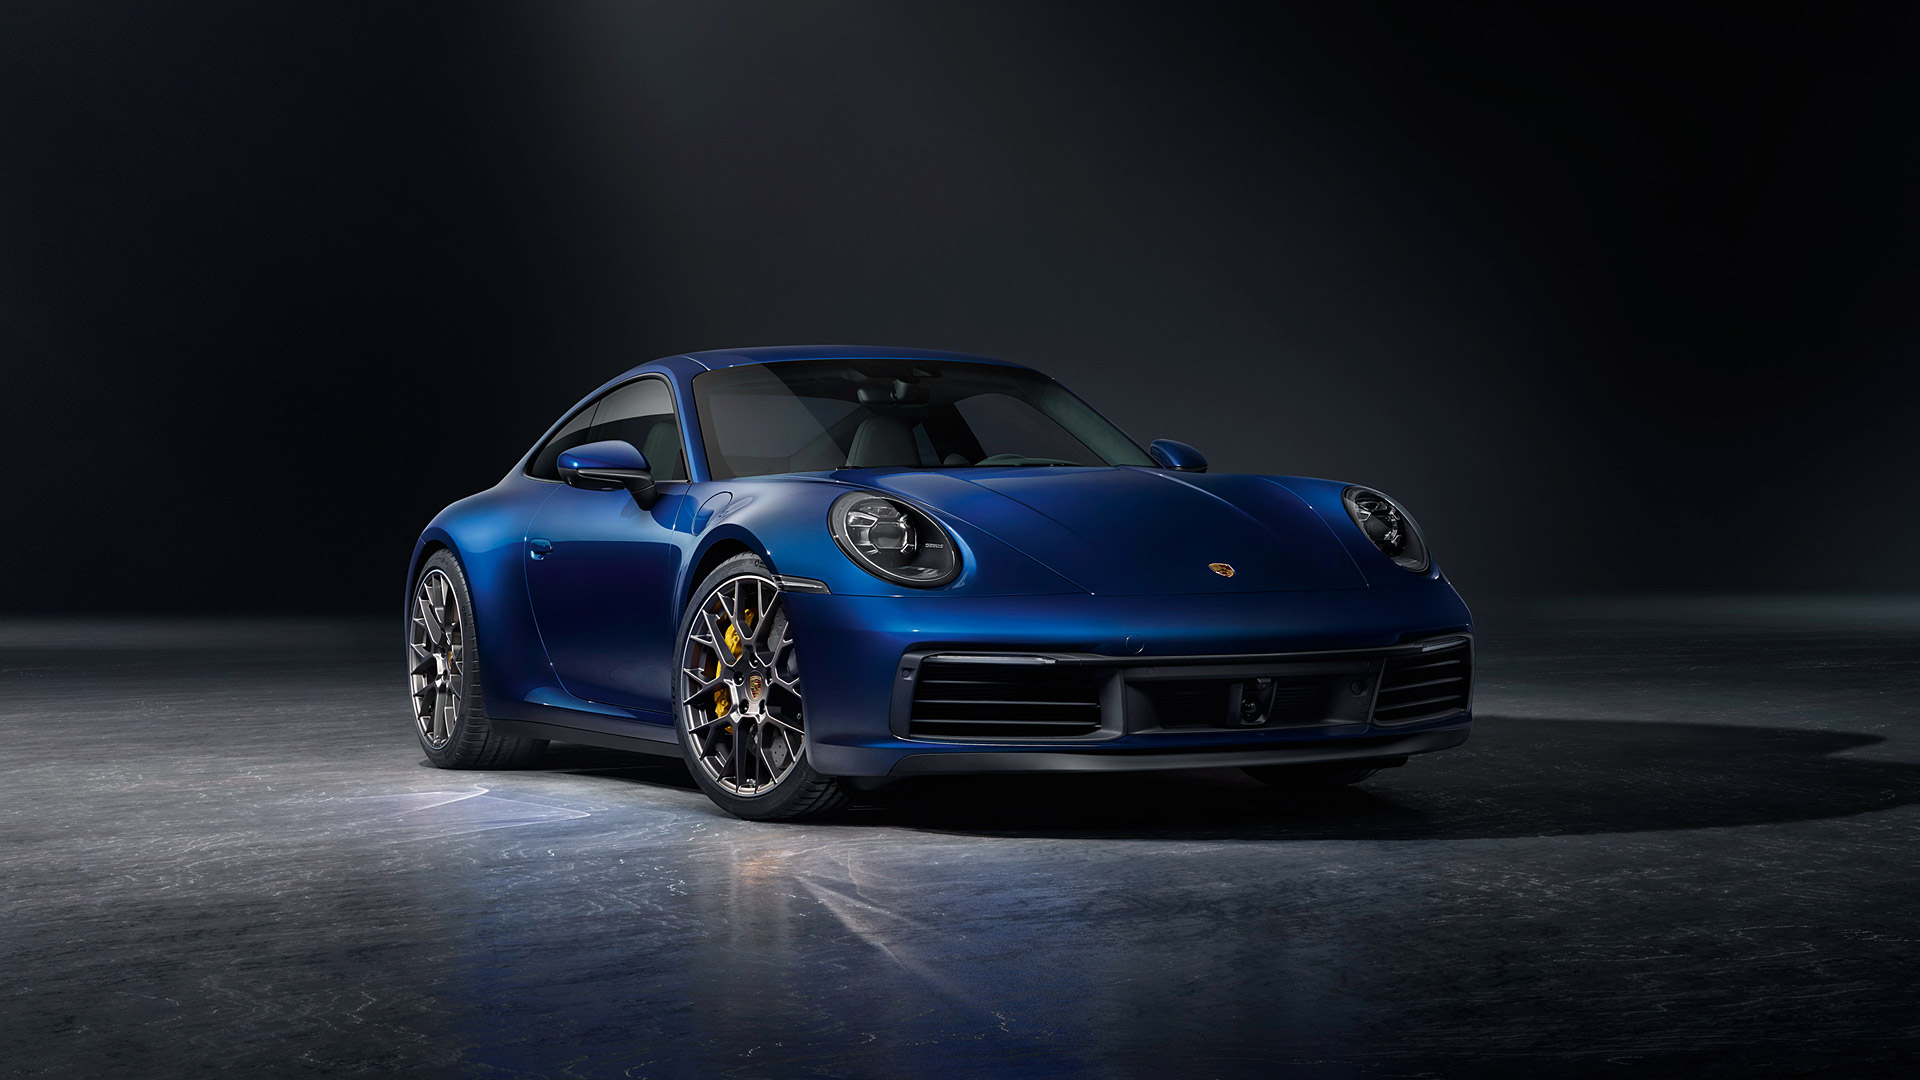 2019 Porsche 911 Carrera 4S Wallpapers HD Images   WSupercars 1920x1080